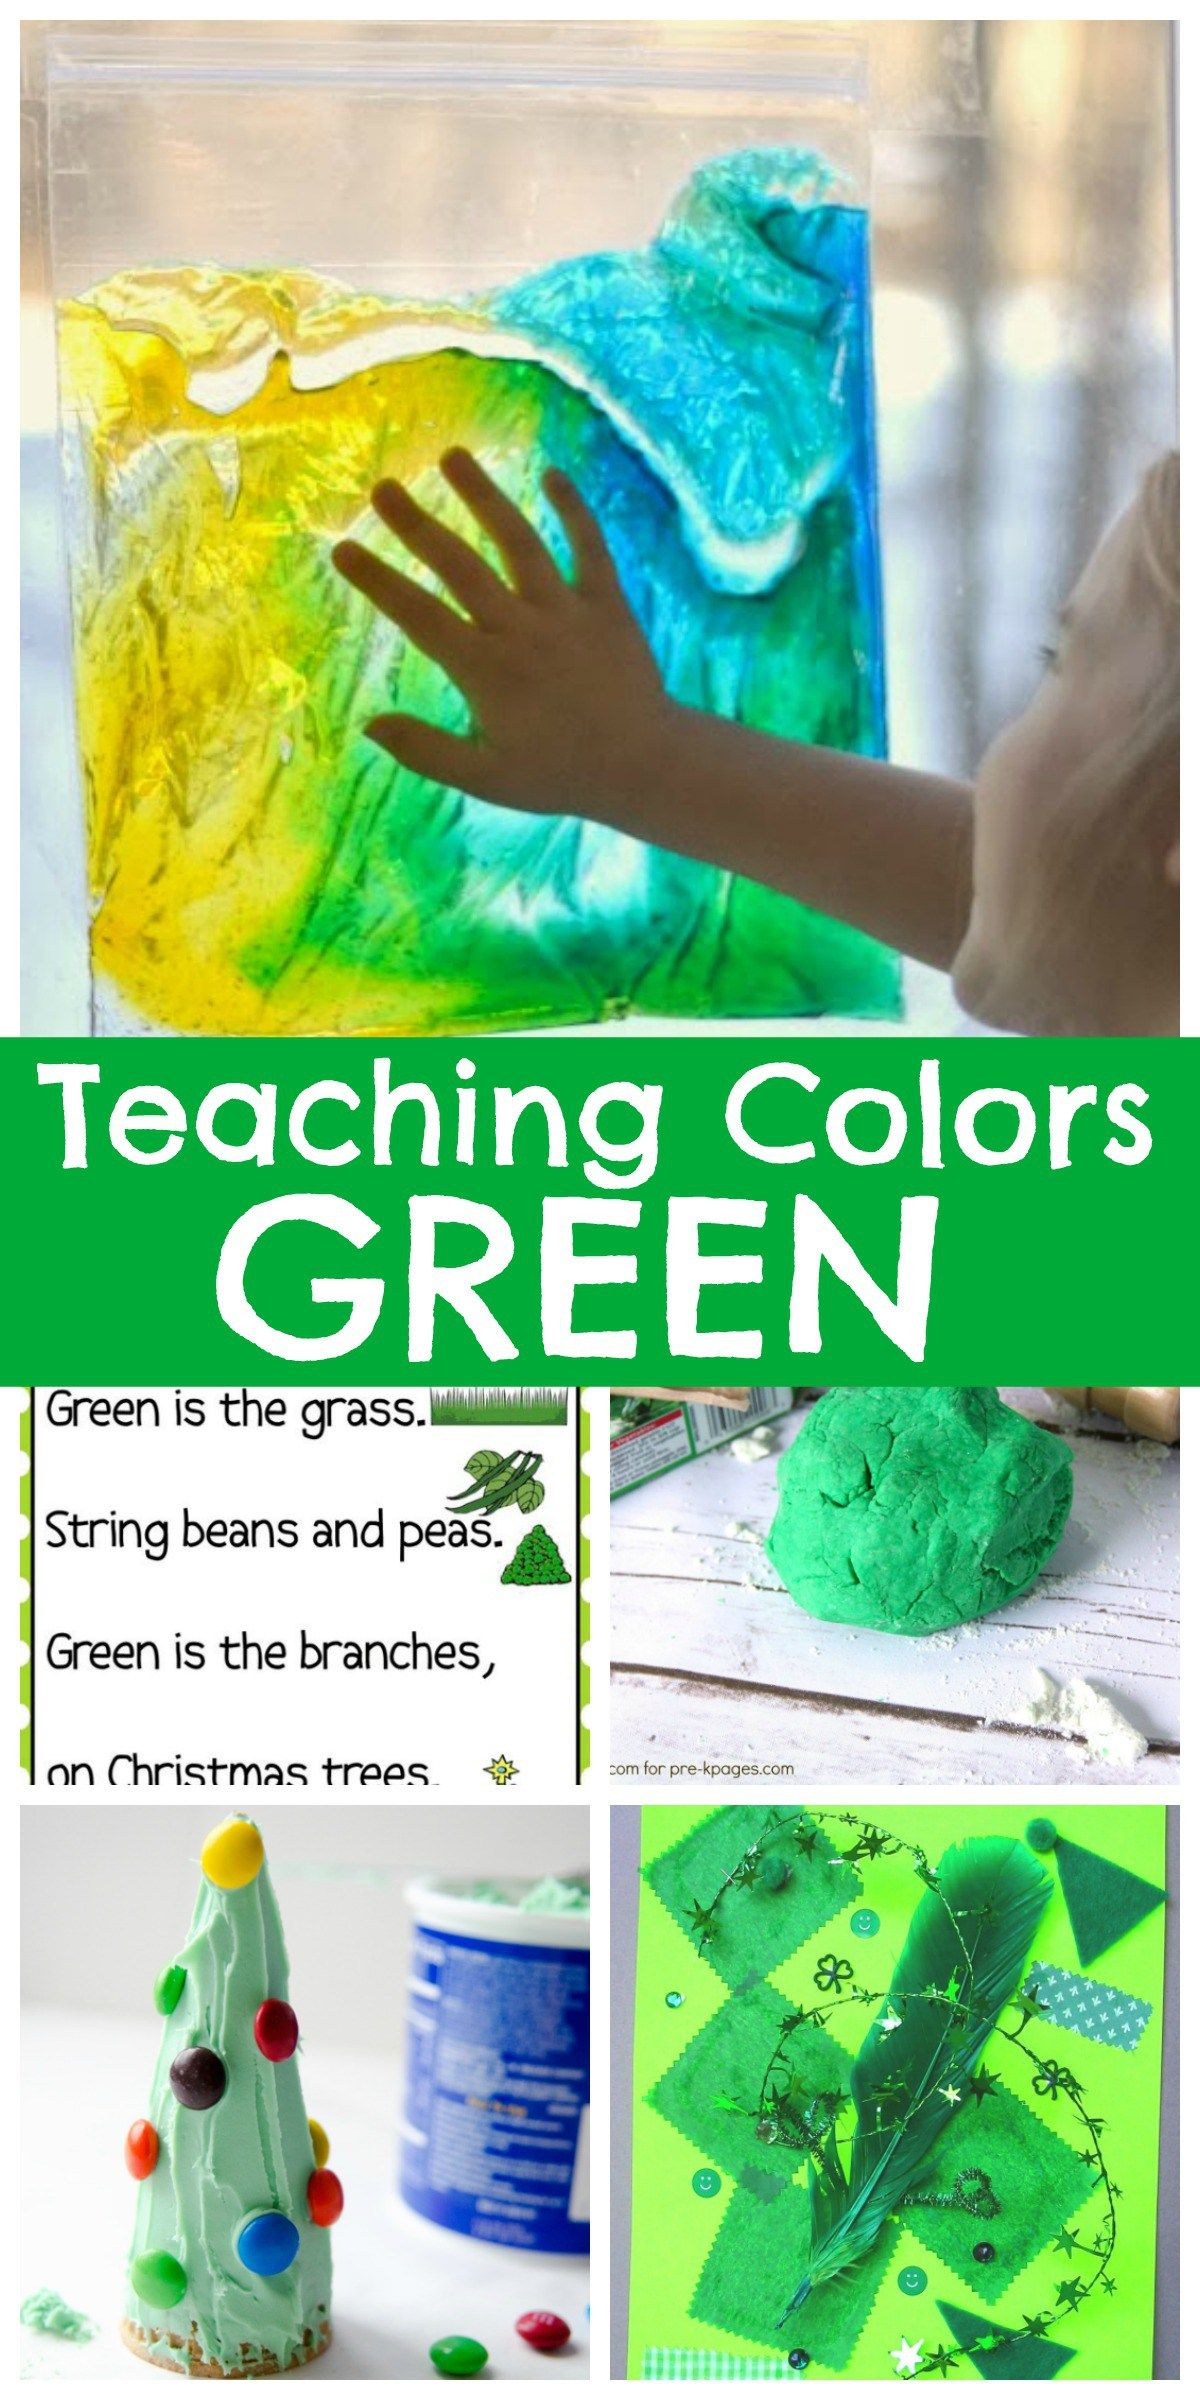 Teaching Colors - Green | Teaching Preschool | Pinterest | Teaching ...